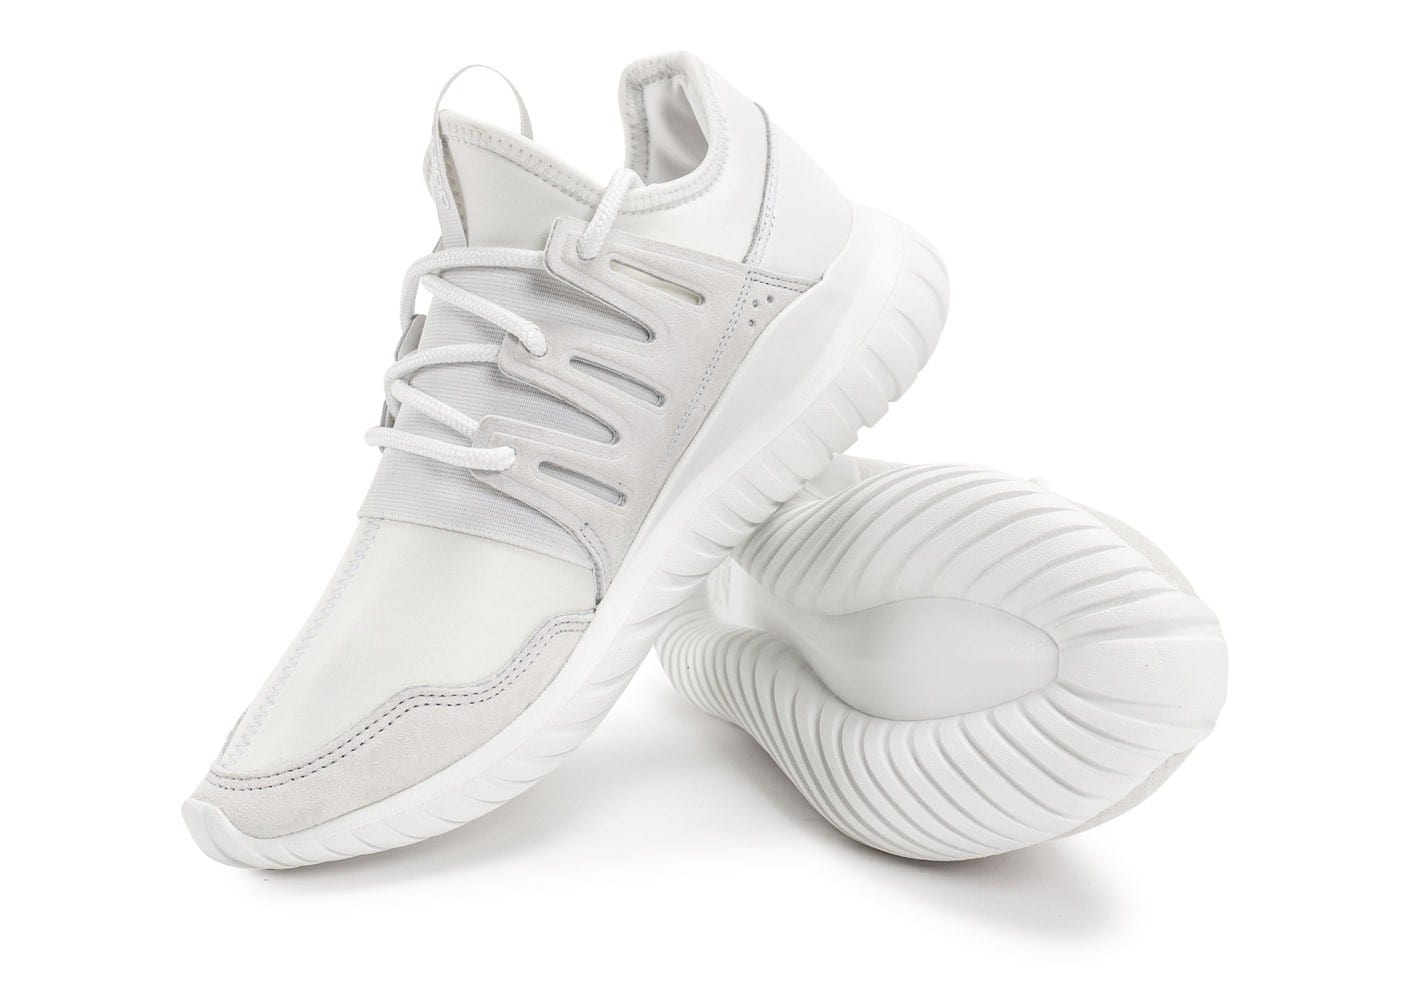 ... Chaussures adidas Tubular Radial blanche vue avant ...